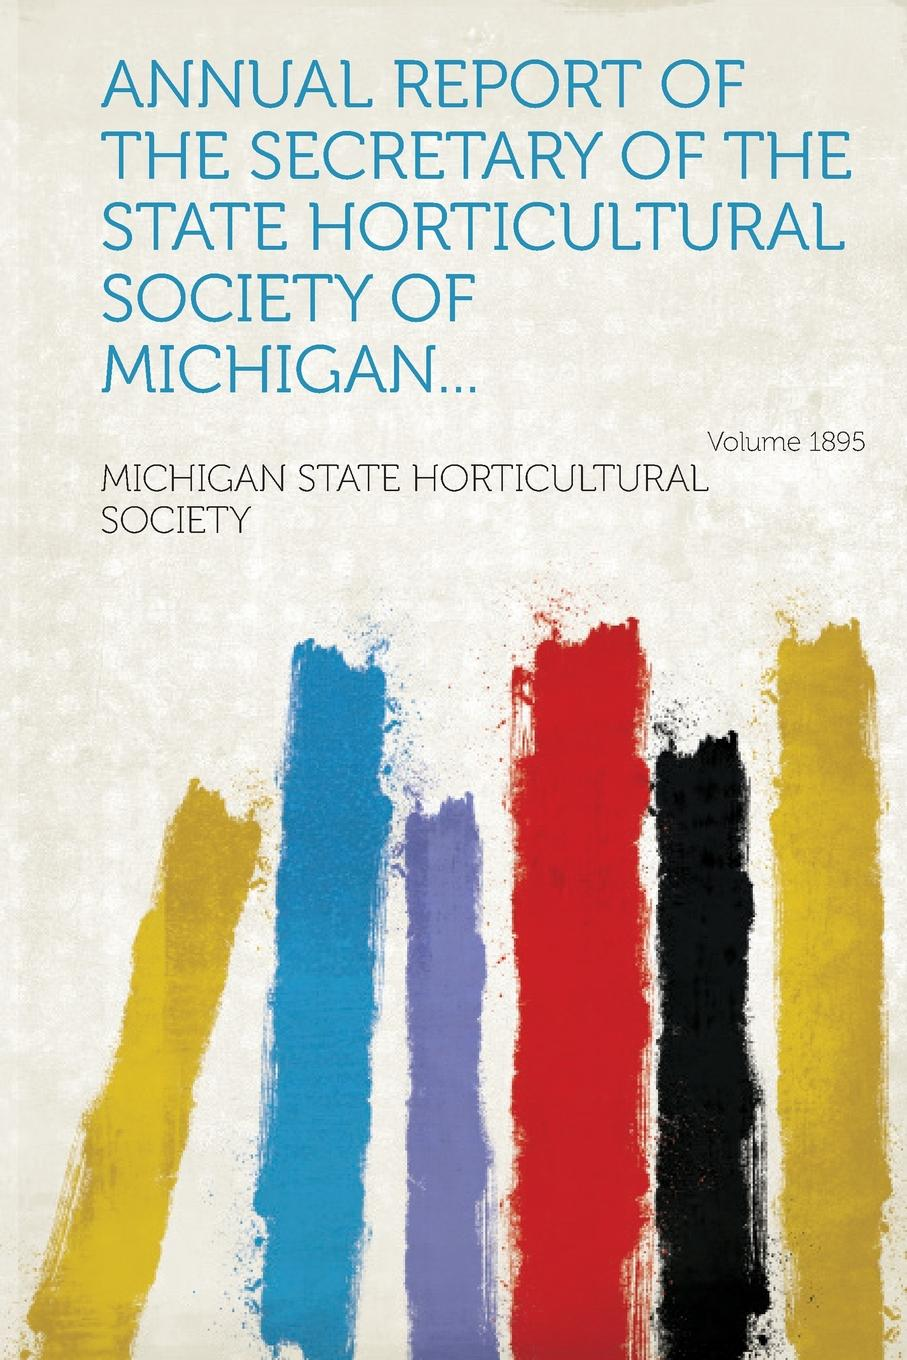 Annual report of the secretary of the State Horticultural Society of Michigan... Year 1895